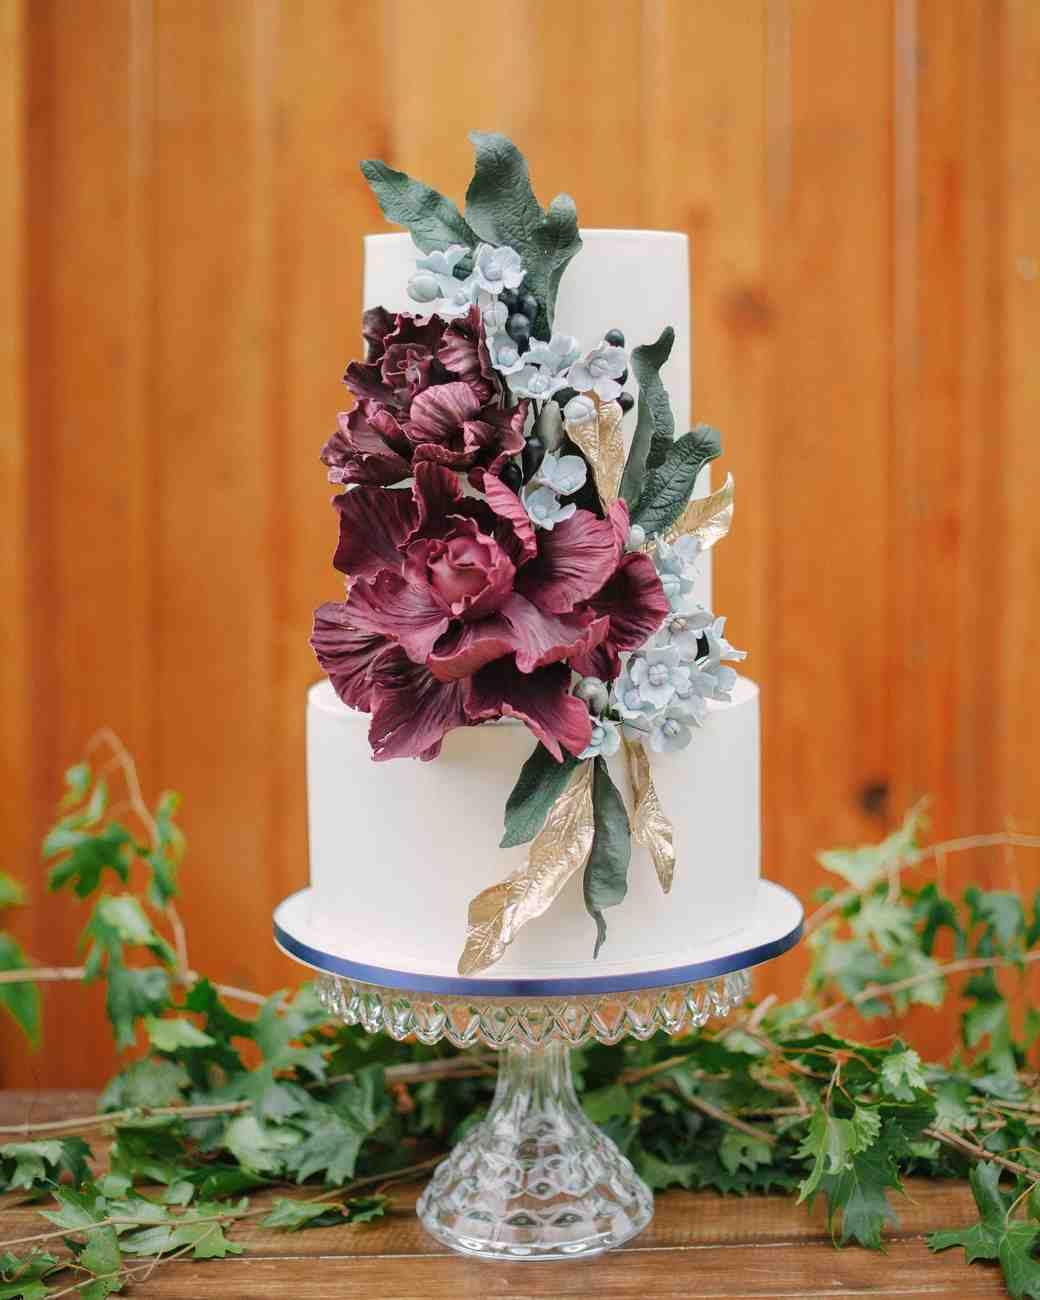 45 Wedding Cakes With Sugar Flowers That Look Stunningly: 50 Beautiful Wedding Cakes That Are (Almost!) Too Pretty